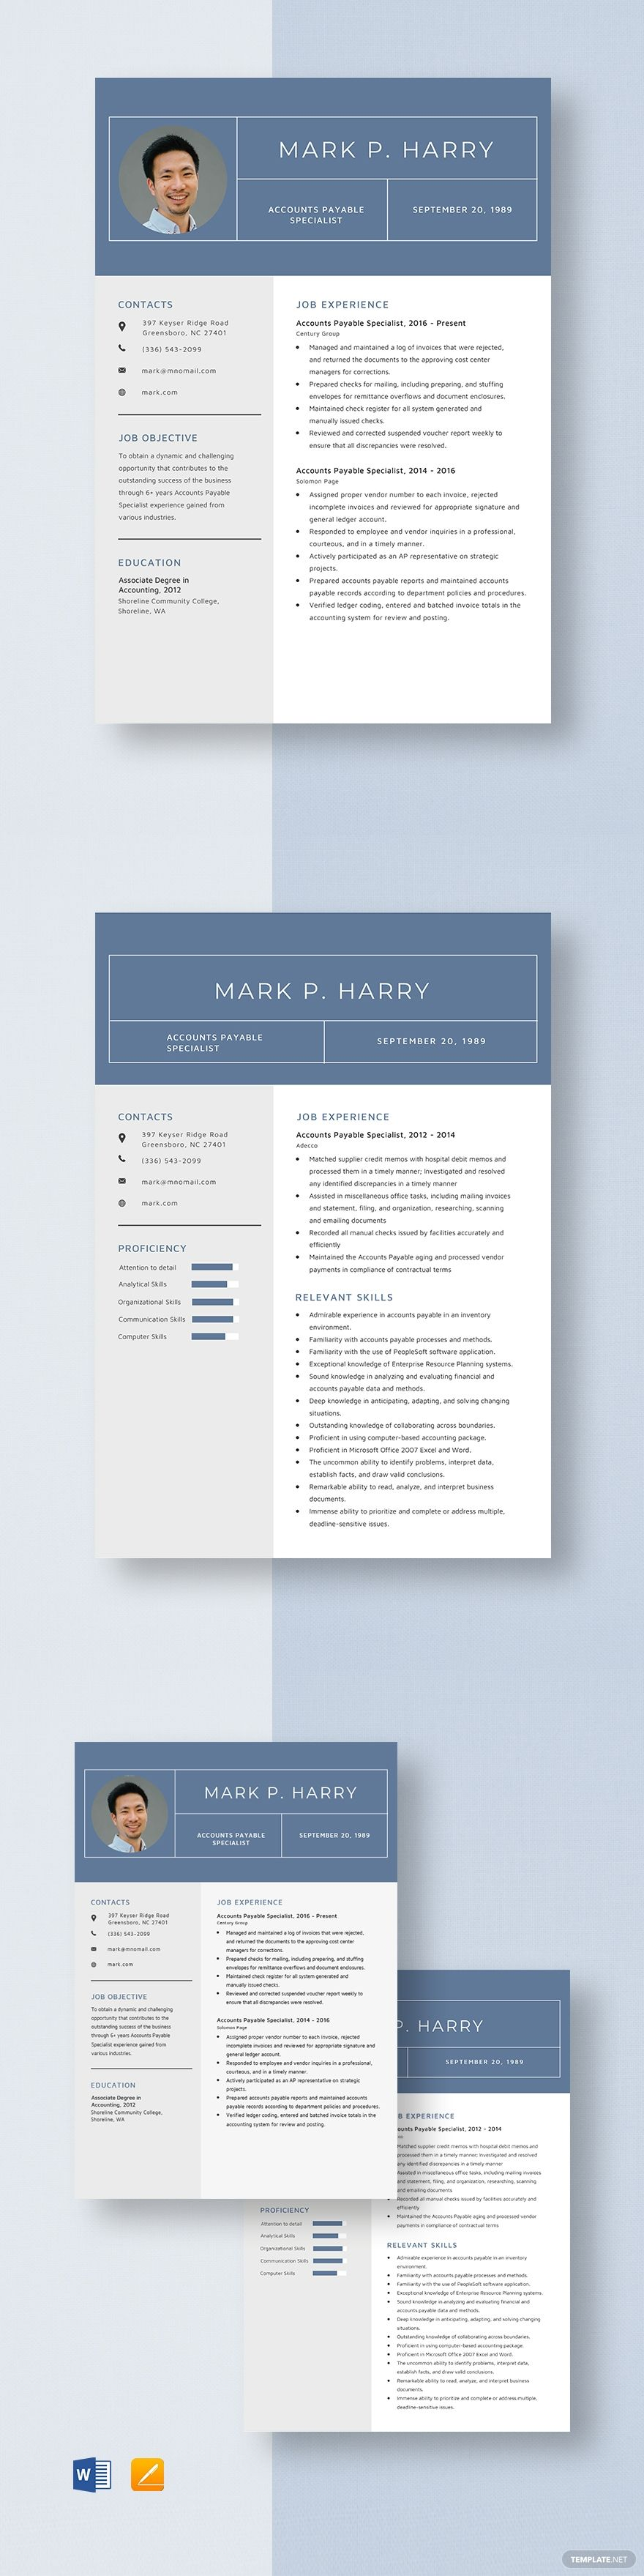 Accounts payable specialist resume template in 2020